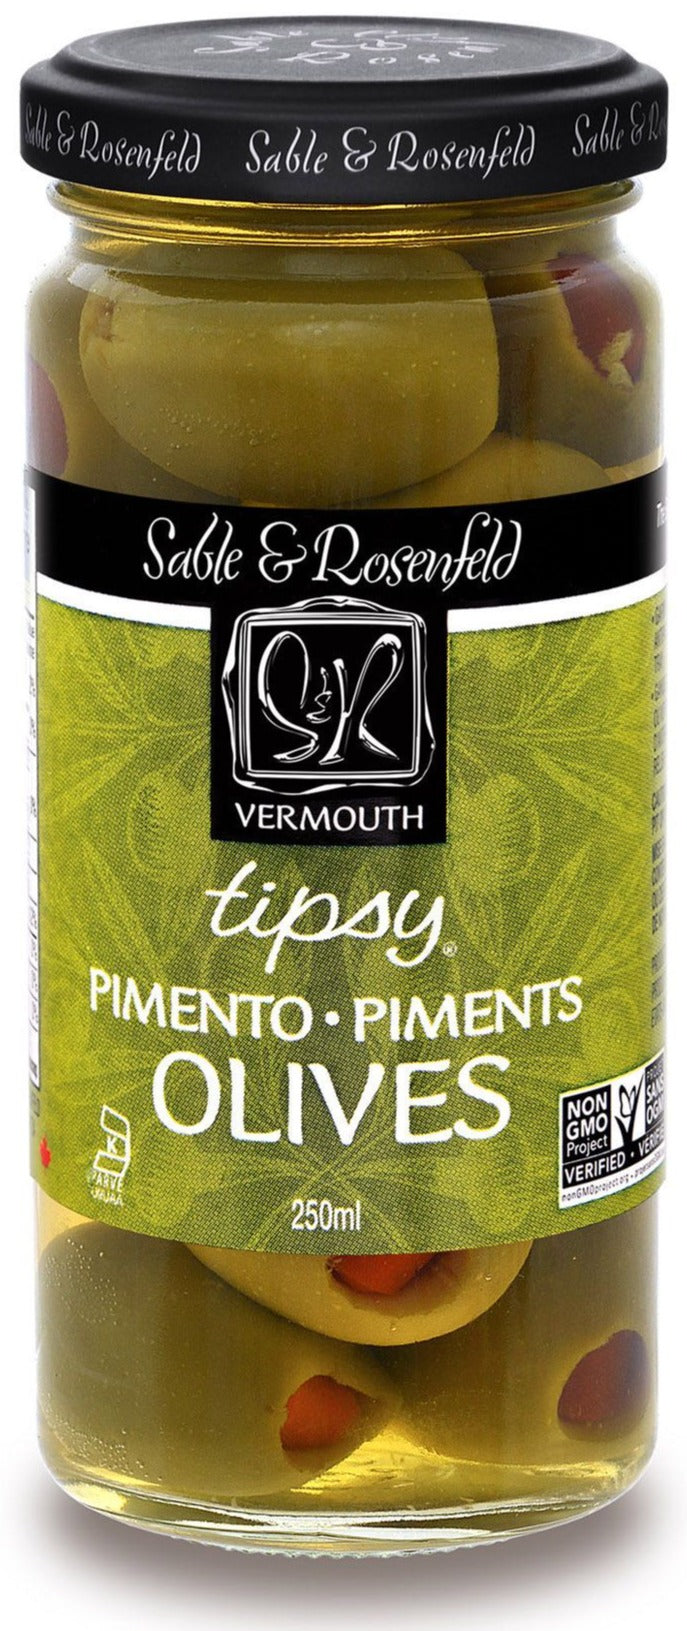 Tipsy Vermouth Pimento Olives by Sable & Rosenfeld 250ml